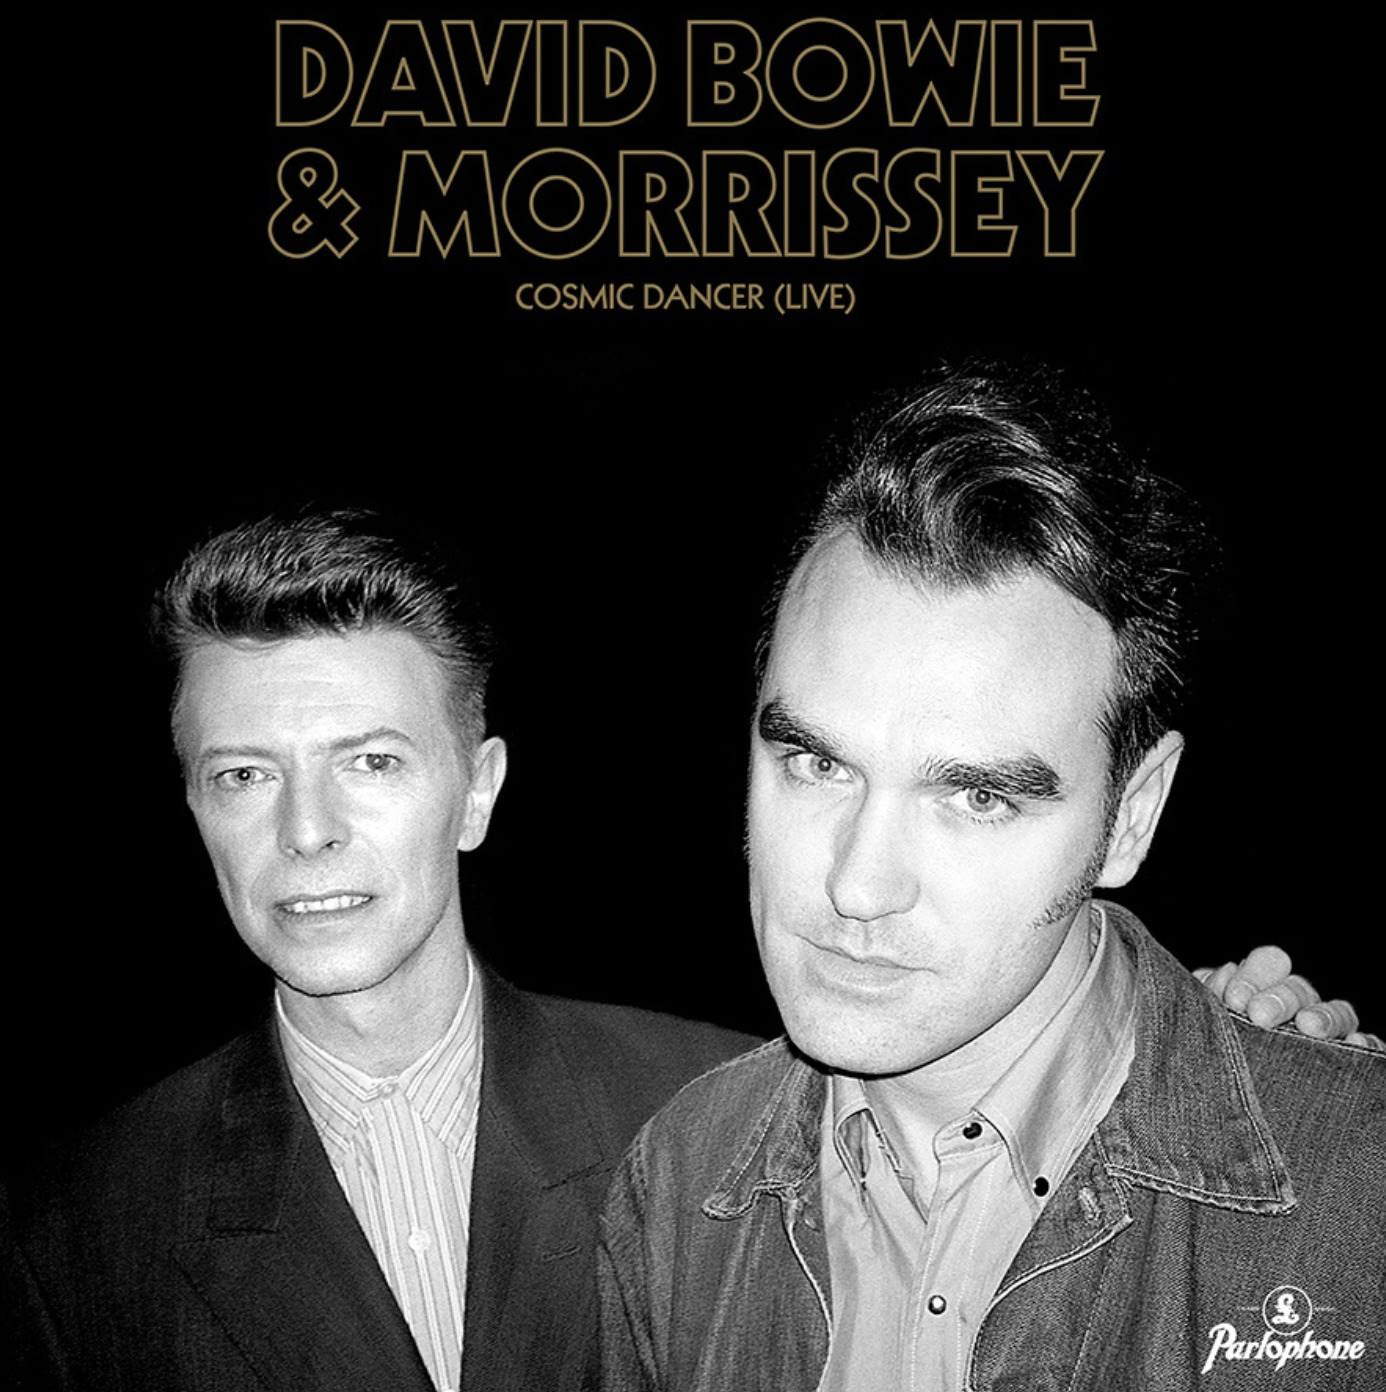 News – David Bowie & Morrissey – Cosmic Dancer (Live)